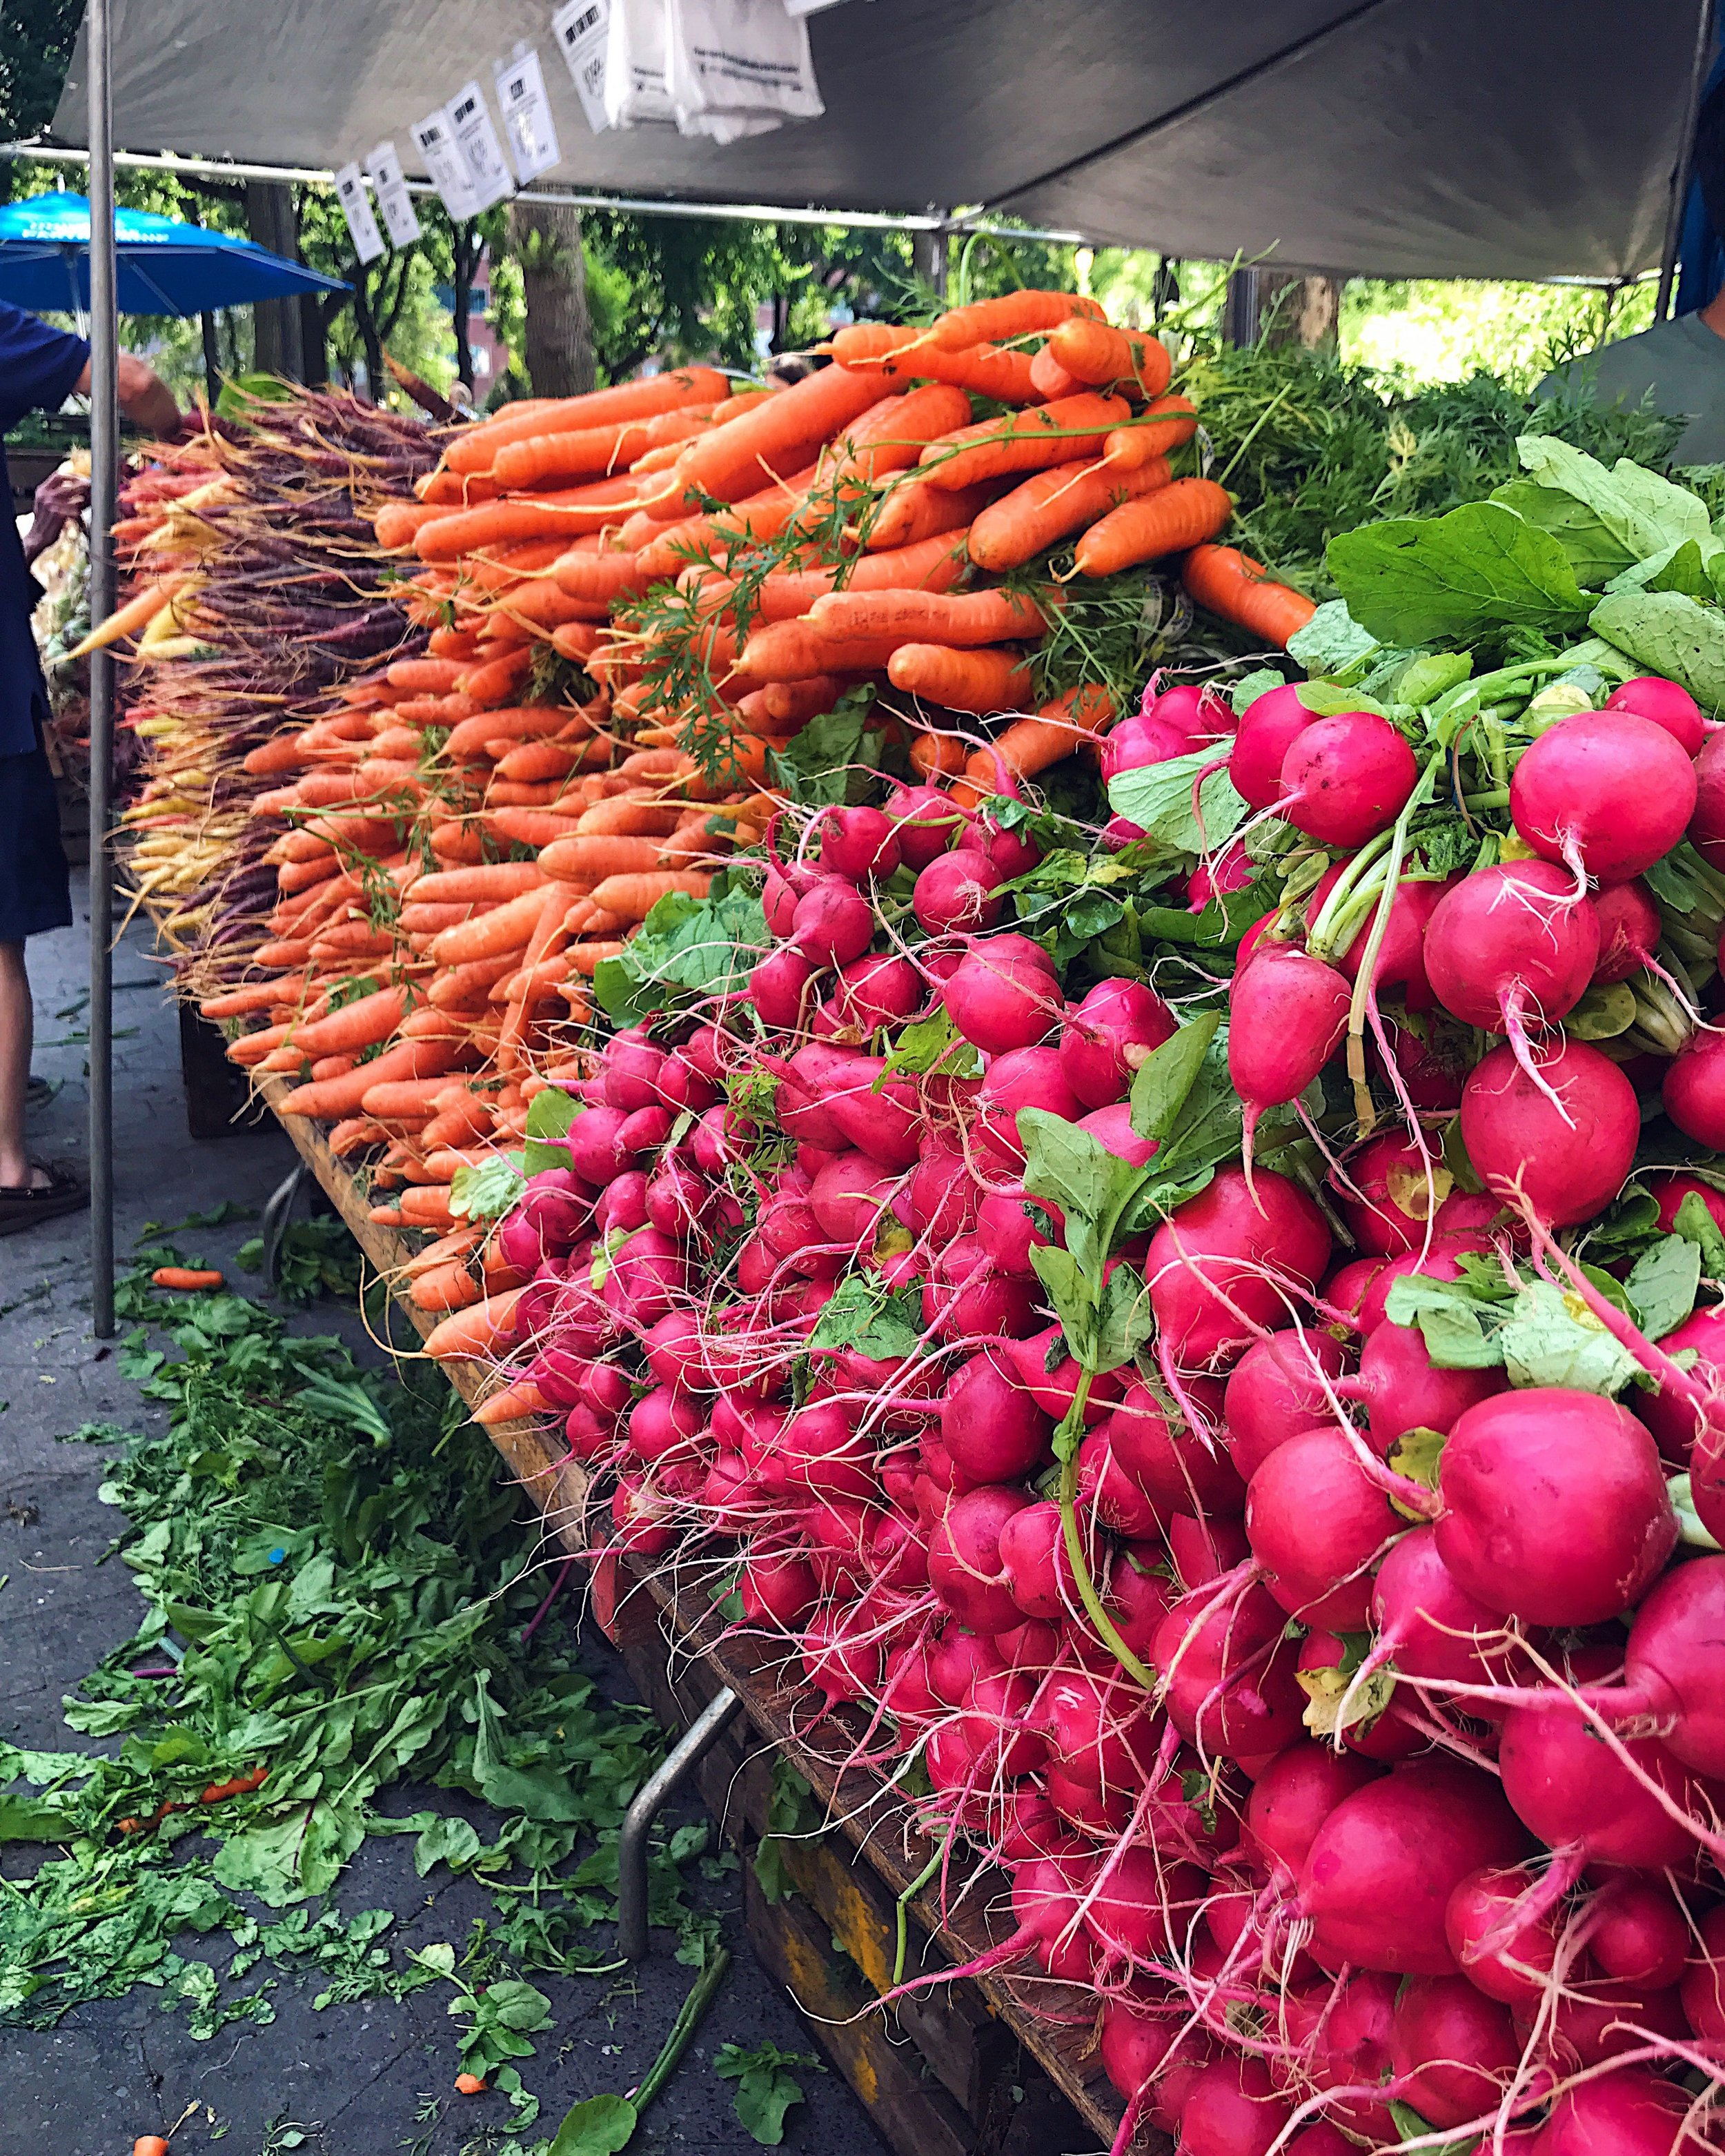 Farmers market. Photo by Rae Ehly